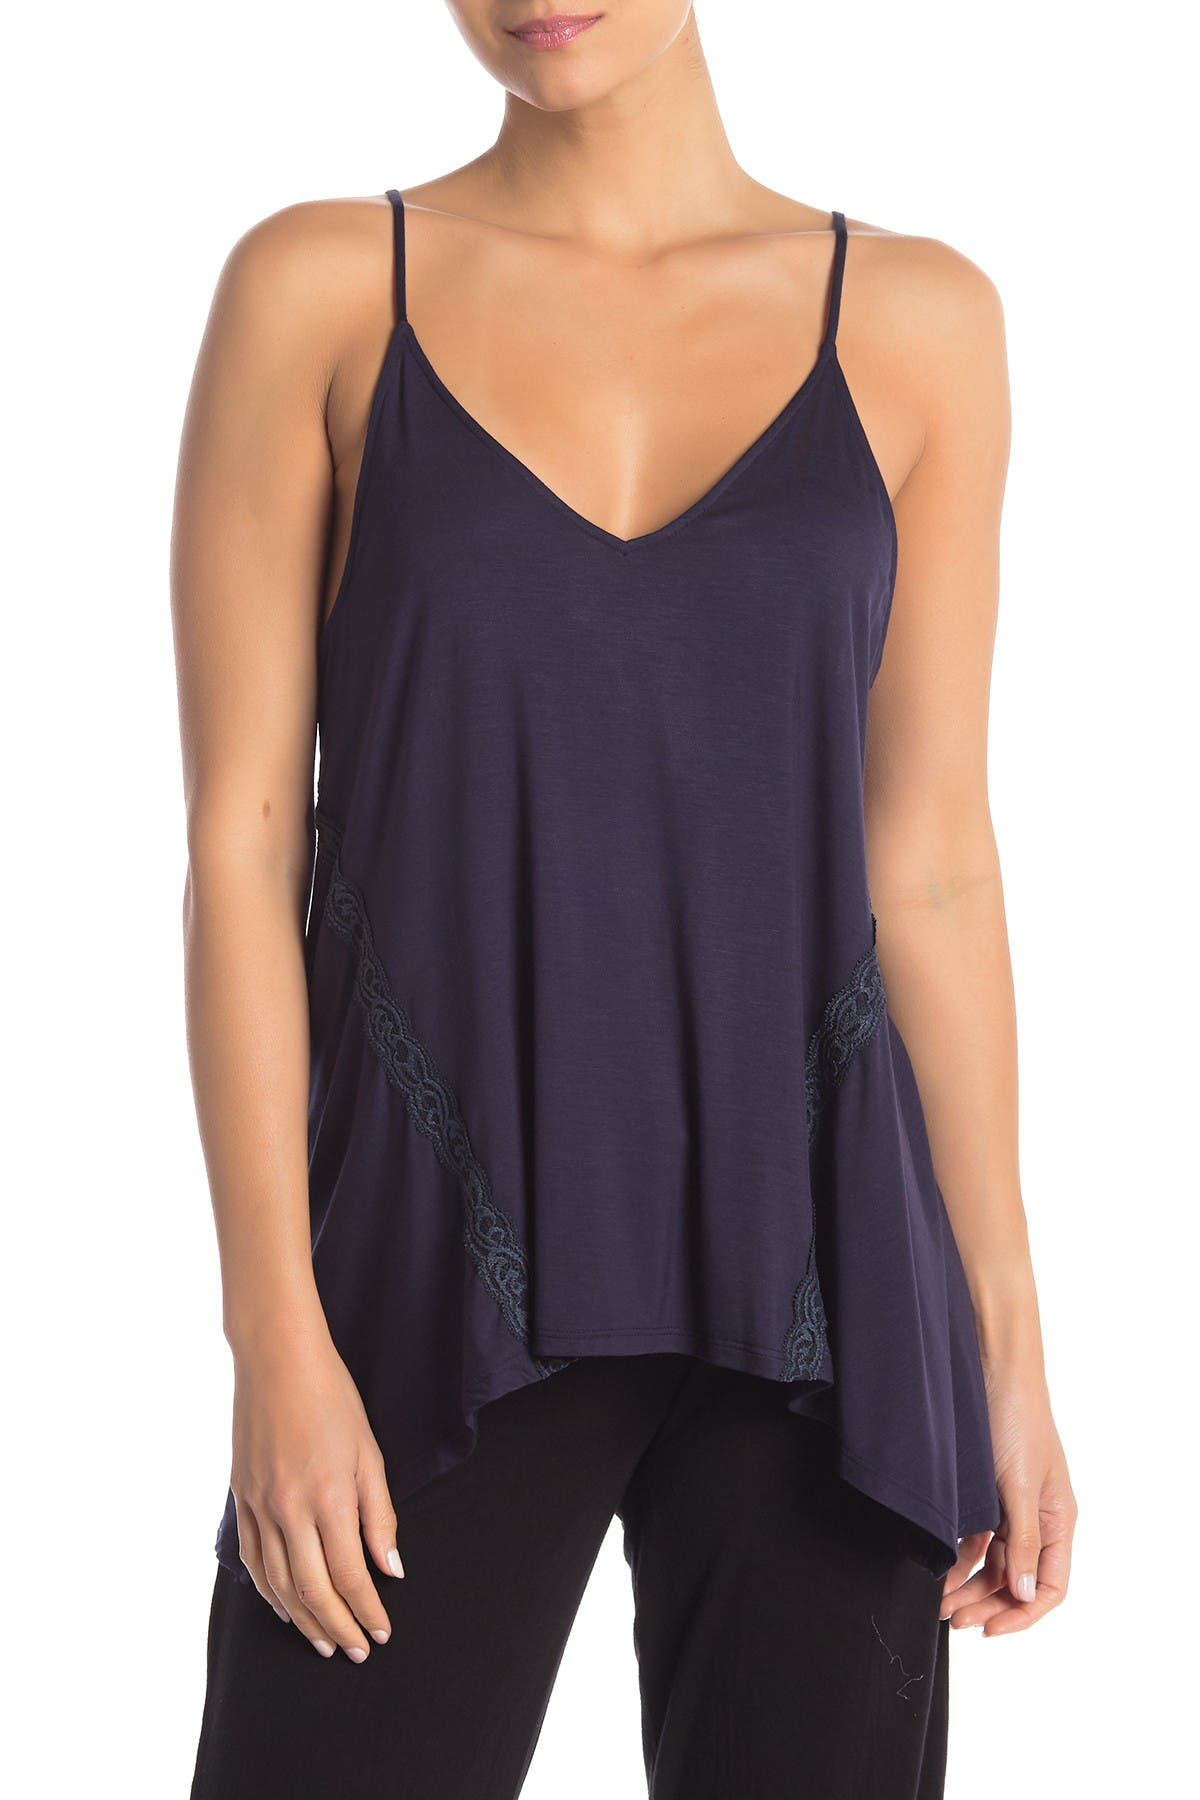 Image of Natori Feathers Essential Camisole